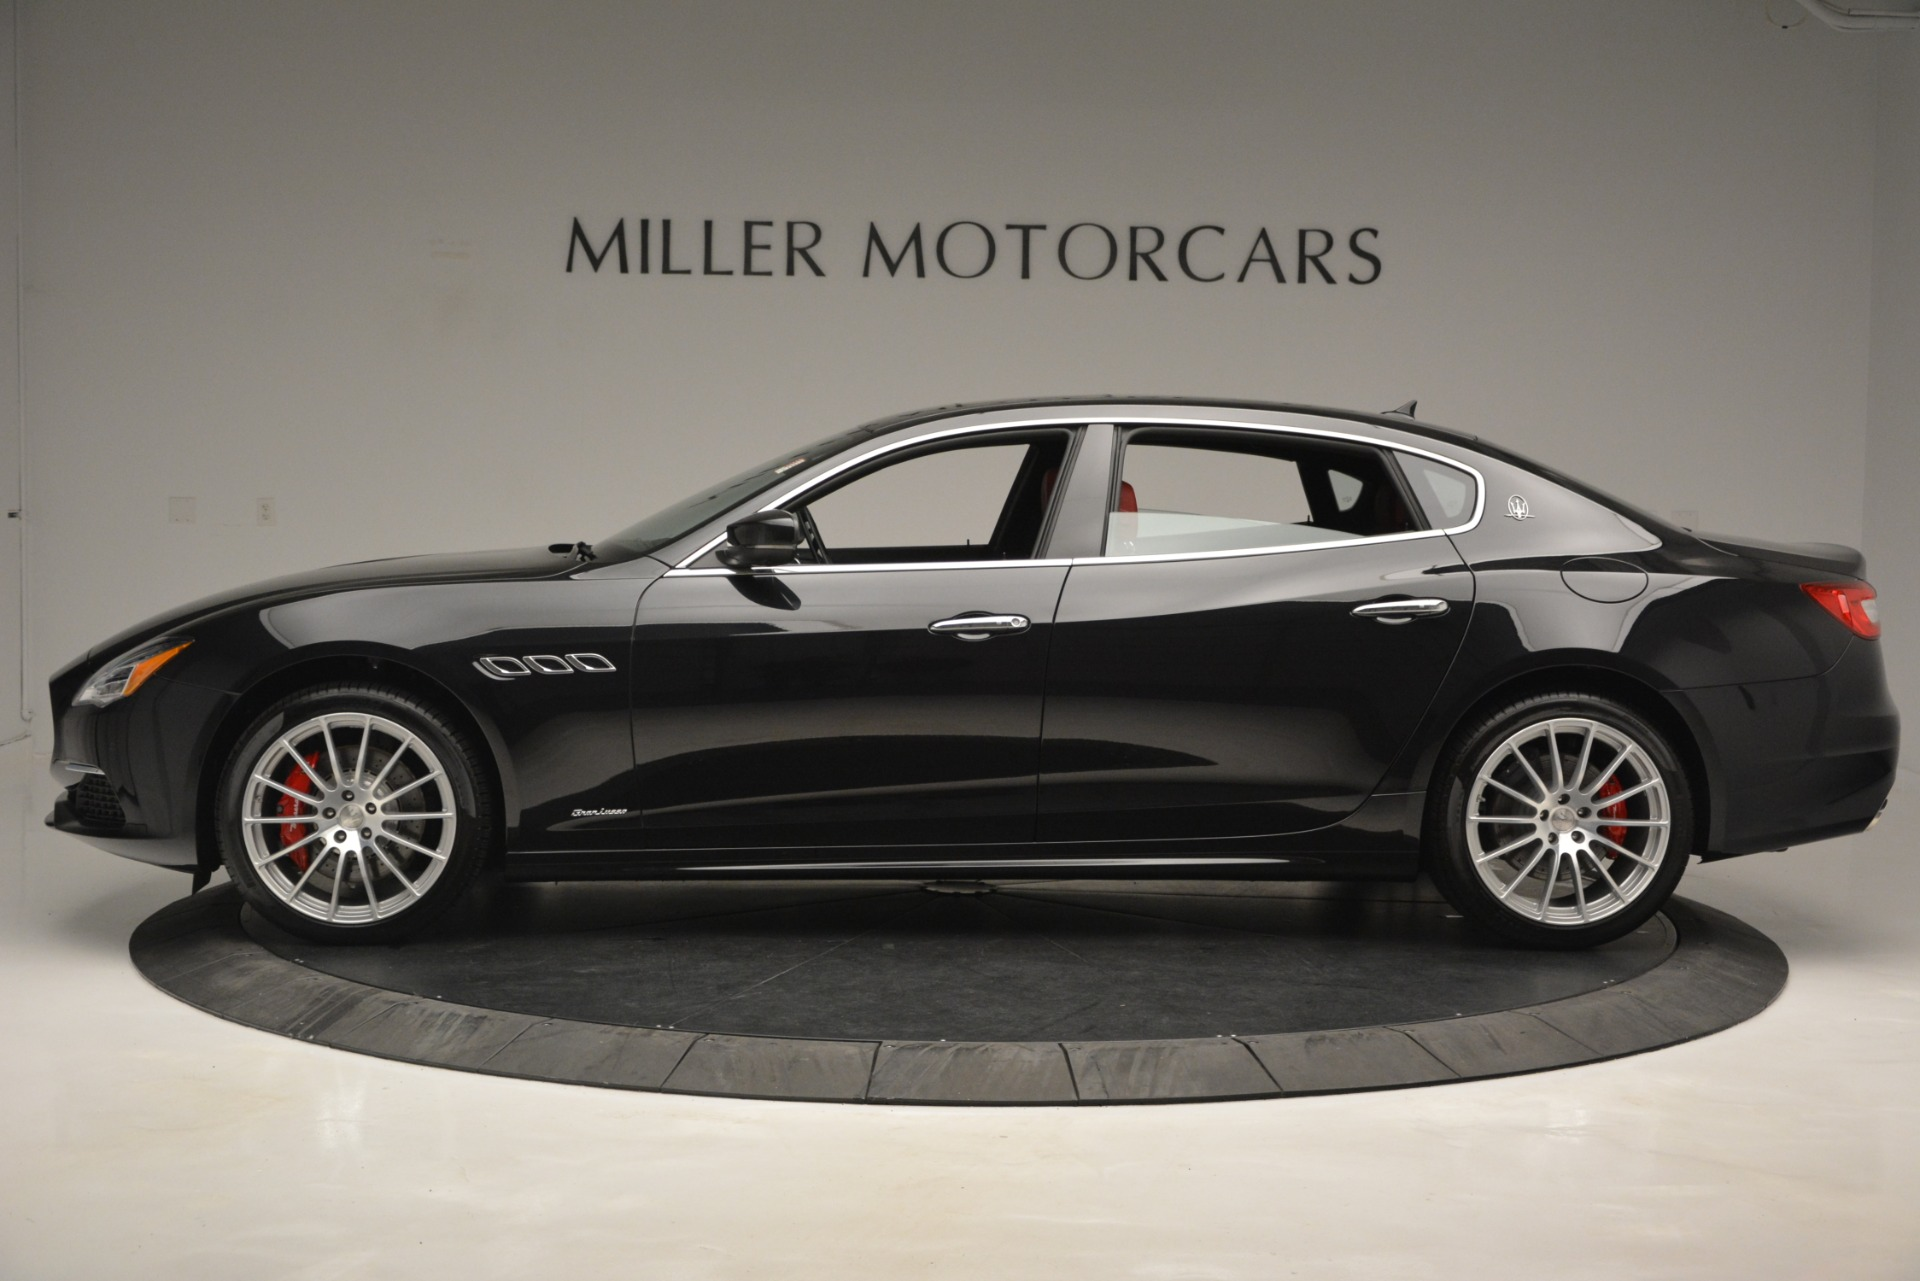 New 2019 Maserati Quattroporte S Q4 GranLusso For Sale In Greenwich, CT. Alfa Romeo of Greenwich, W629 2718_p3